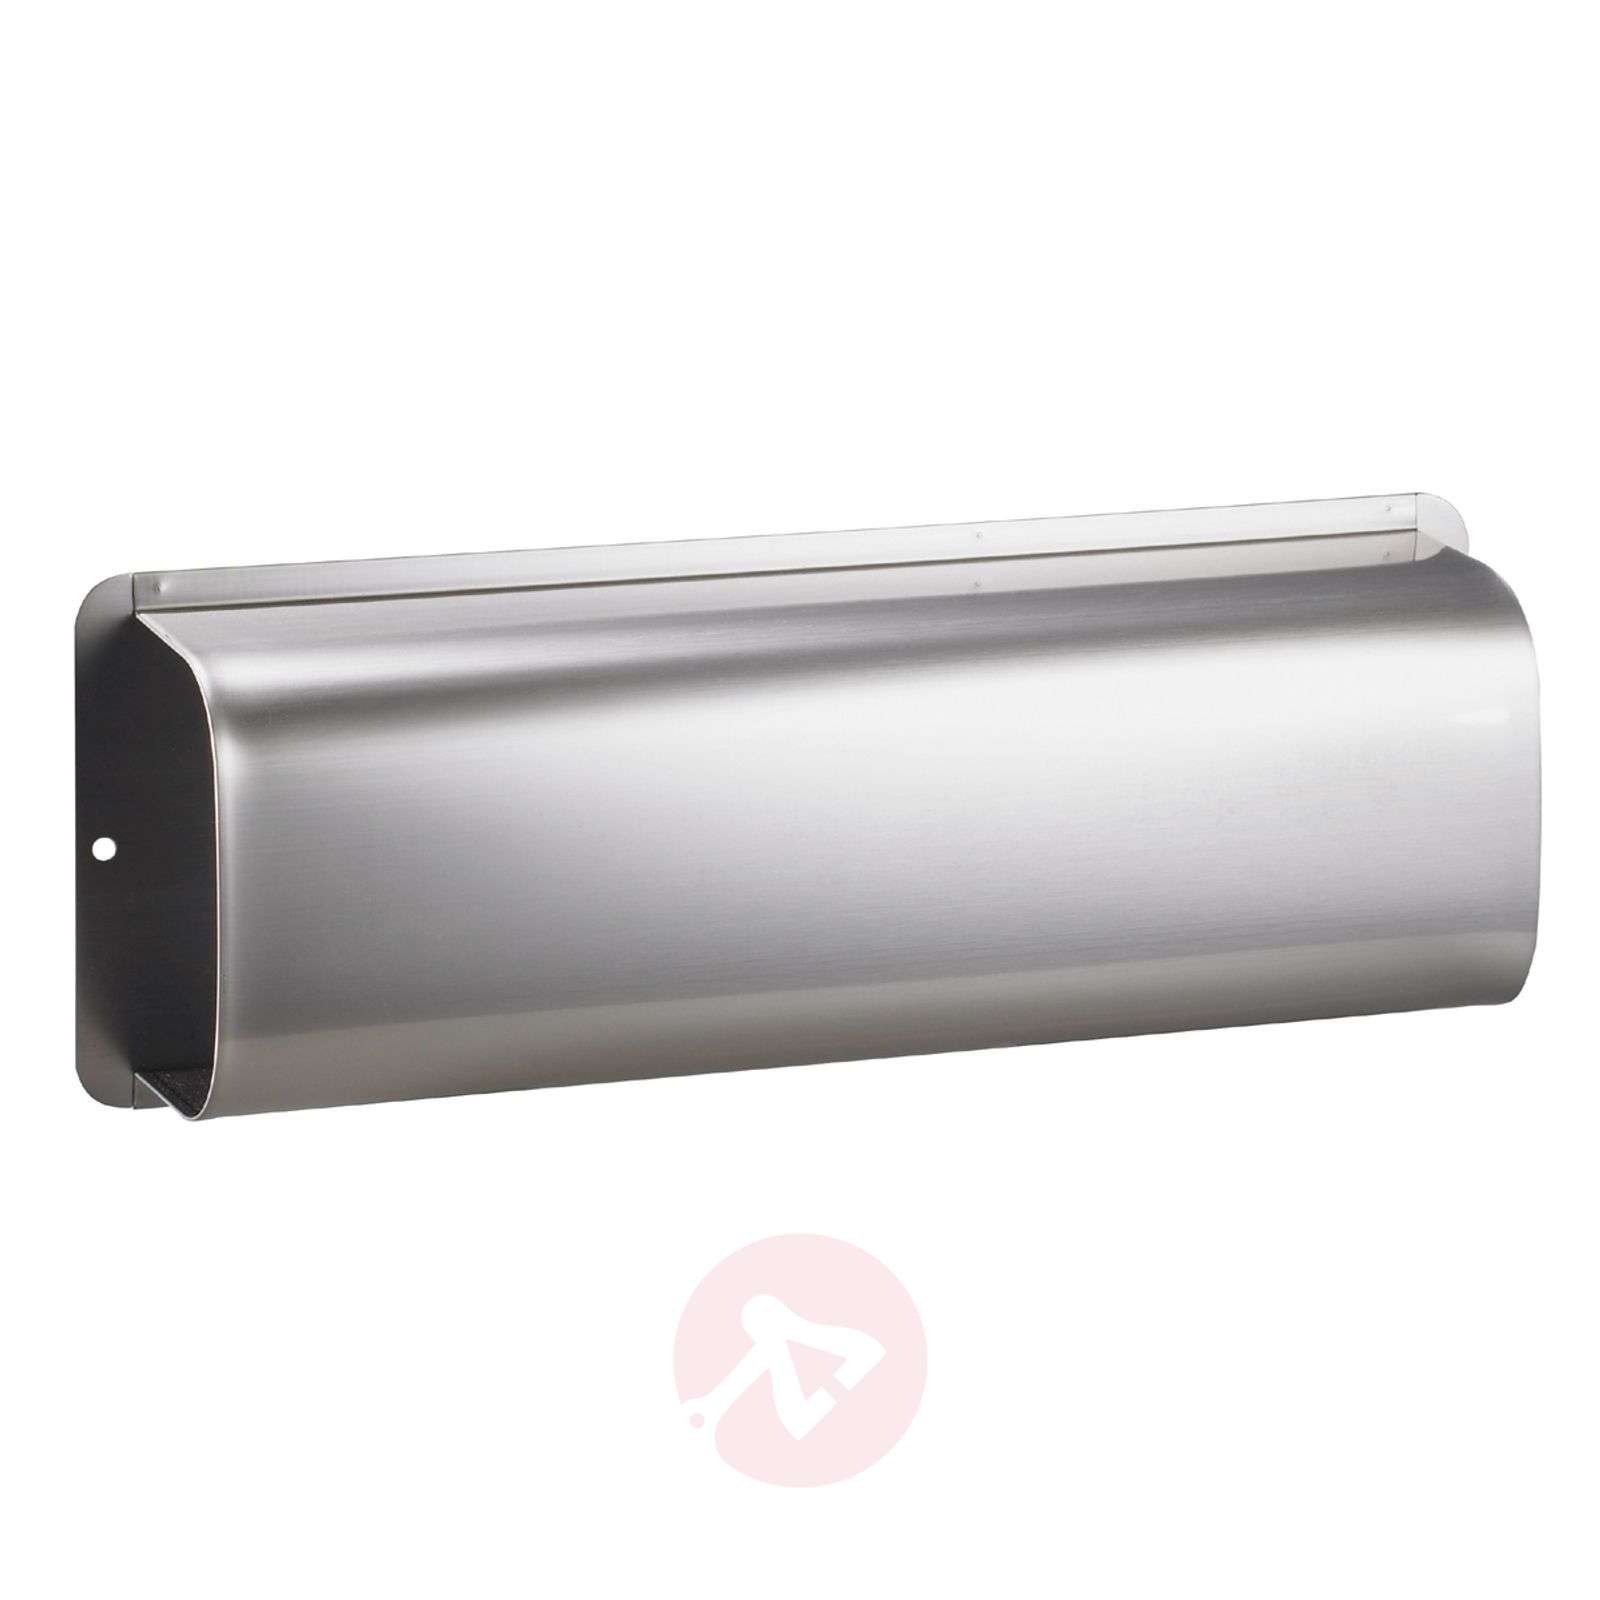 Newspaper box stainless steel for letterbox RAIN-1003098-01